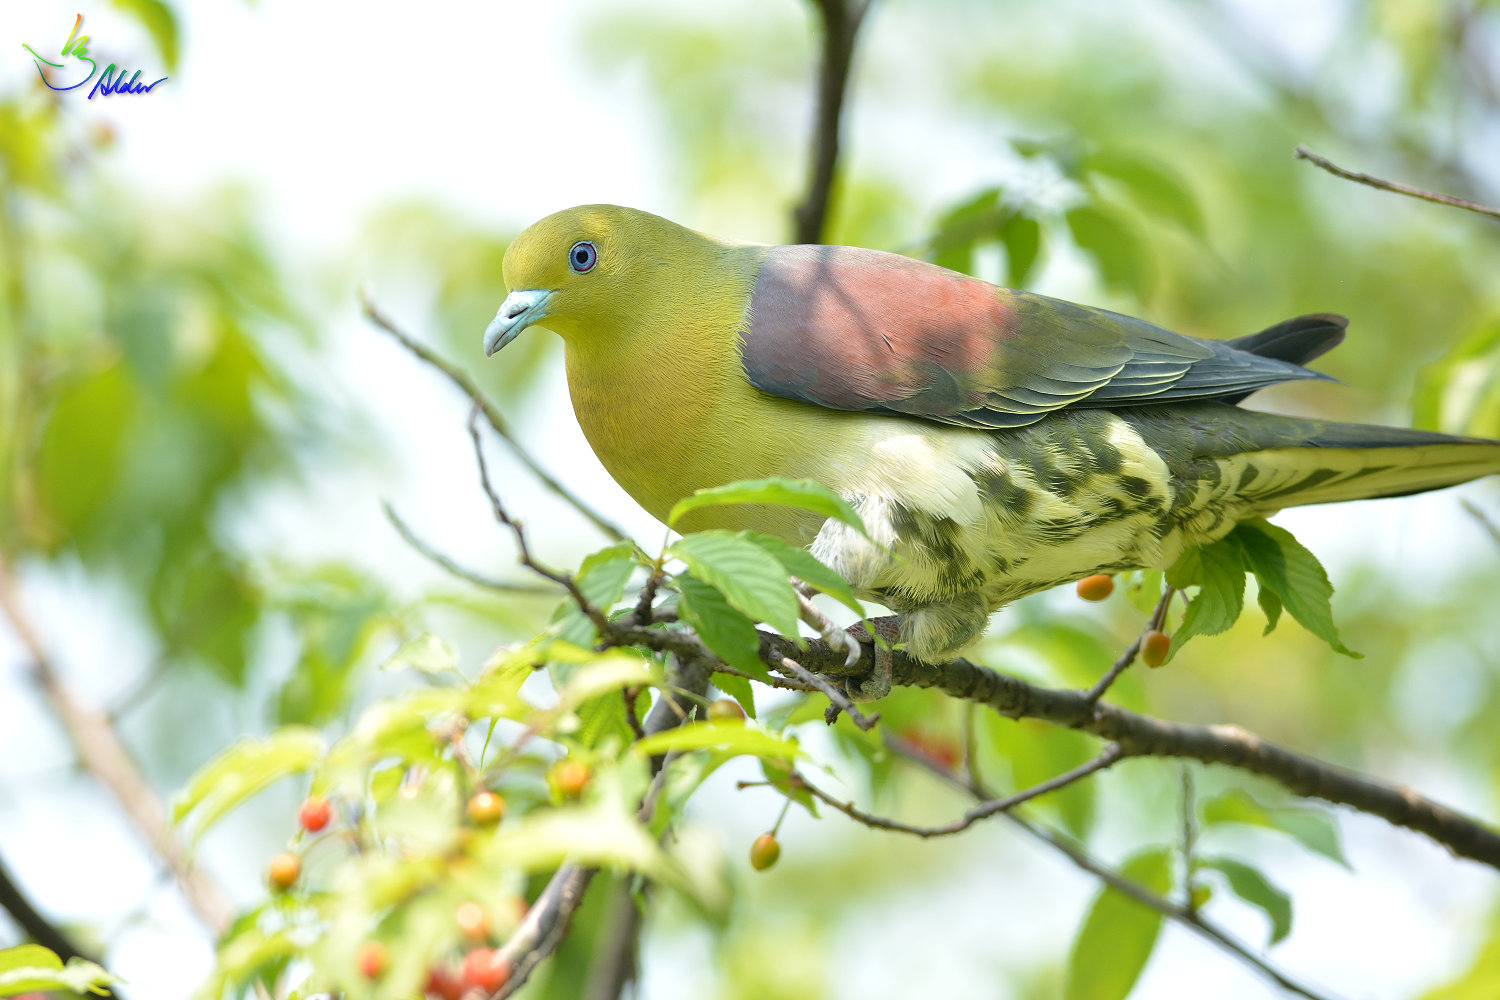 White-bellied_Green_Pigeon_5933